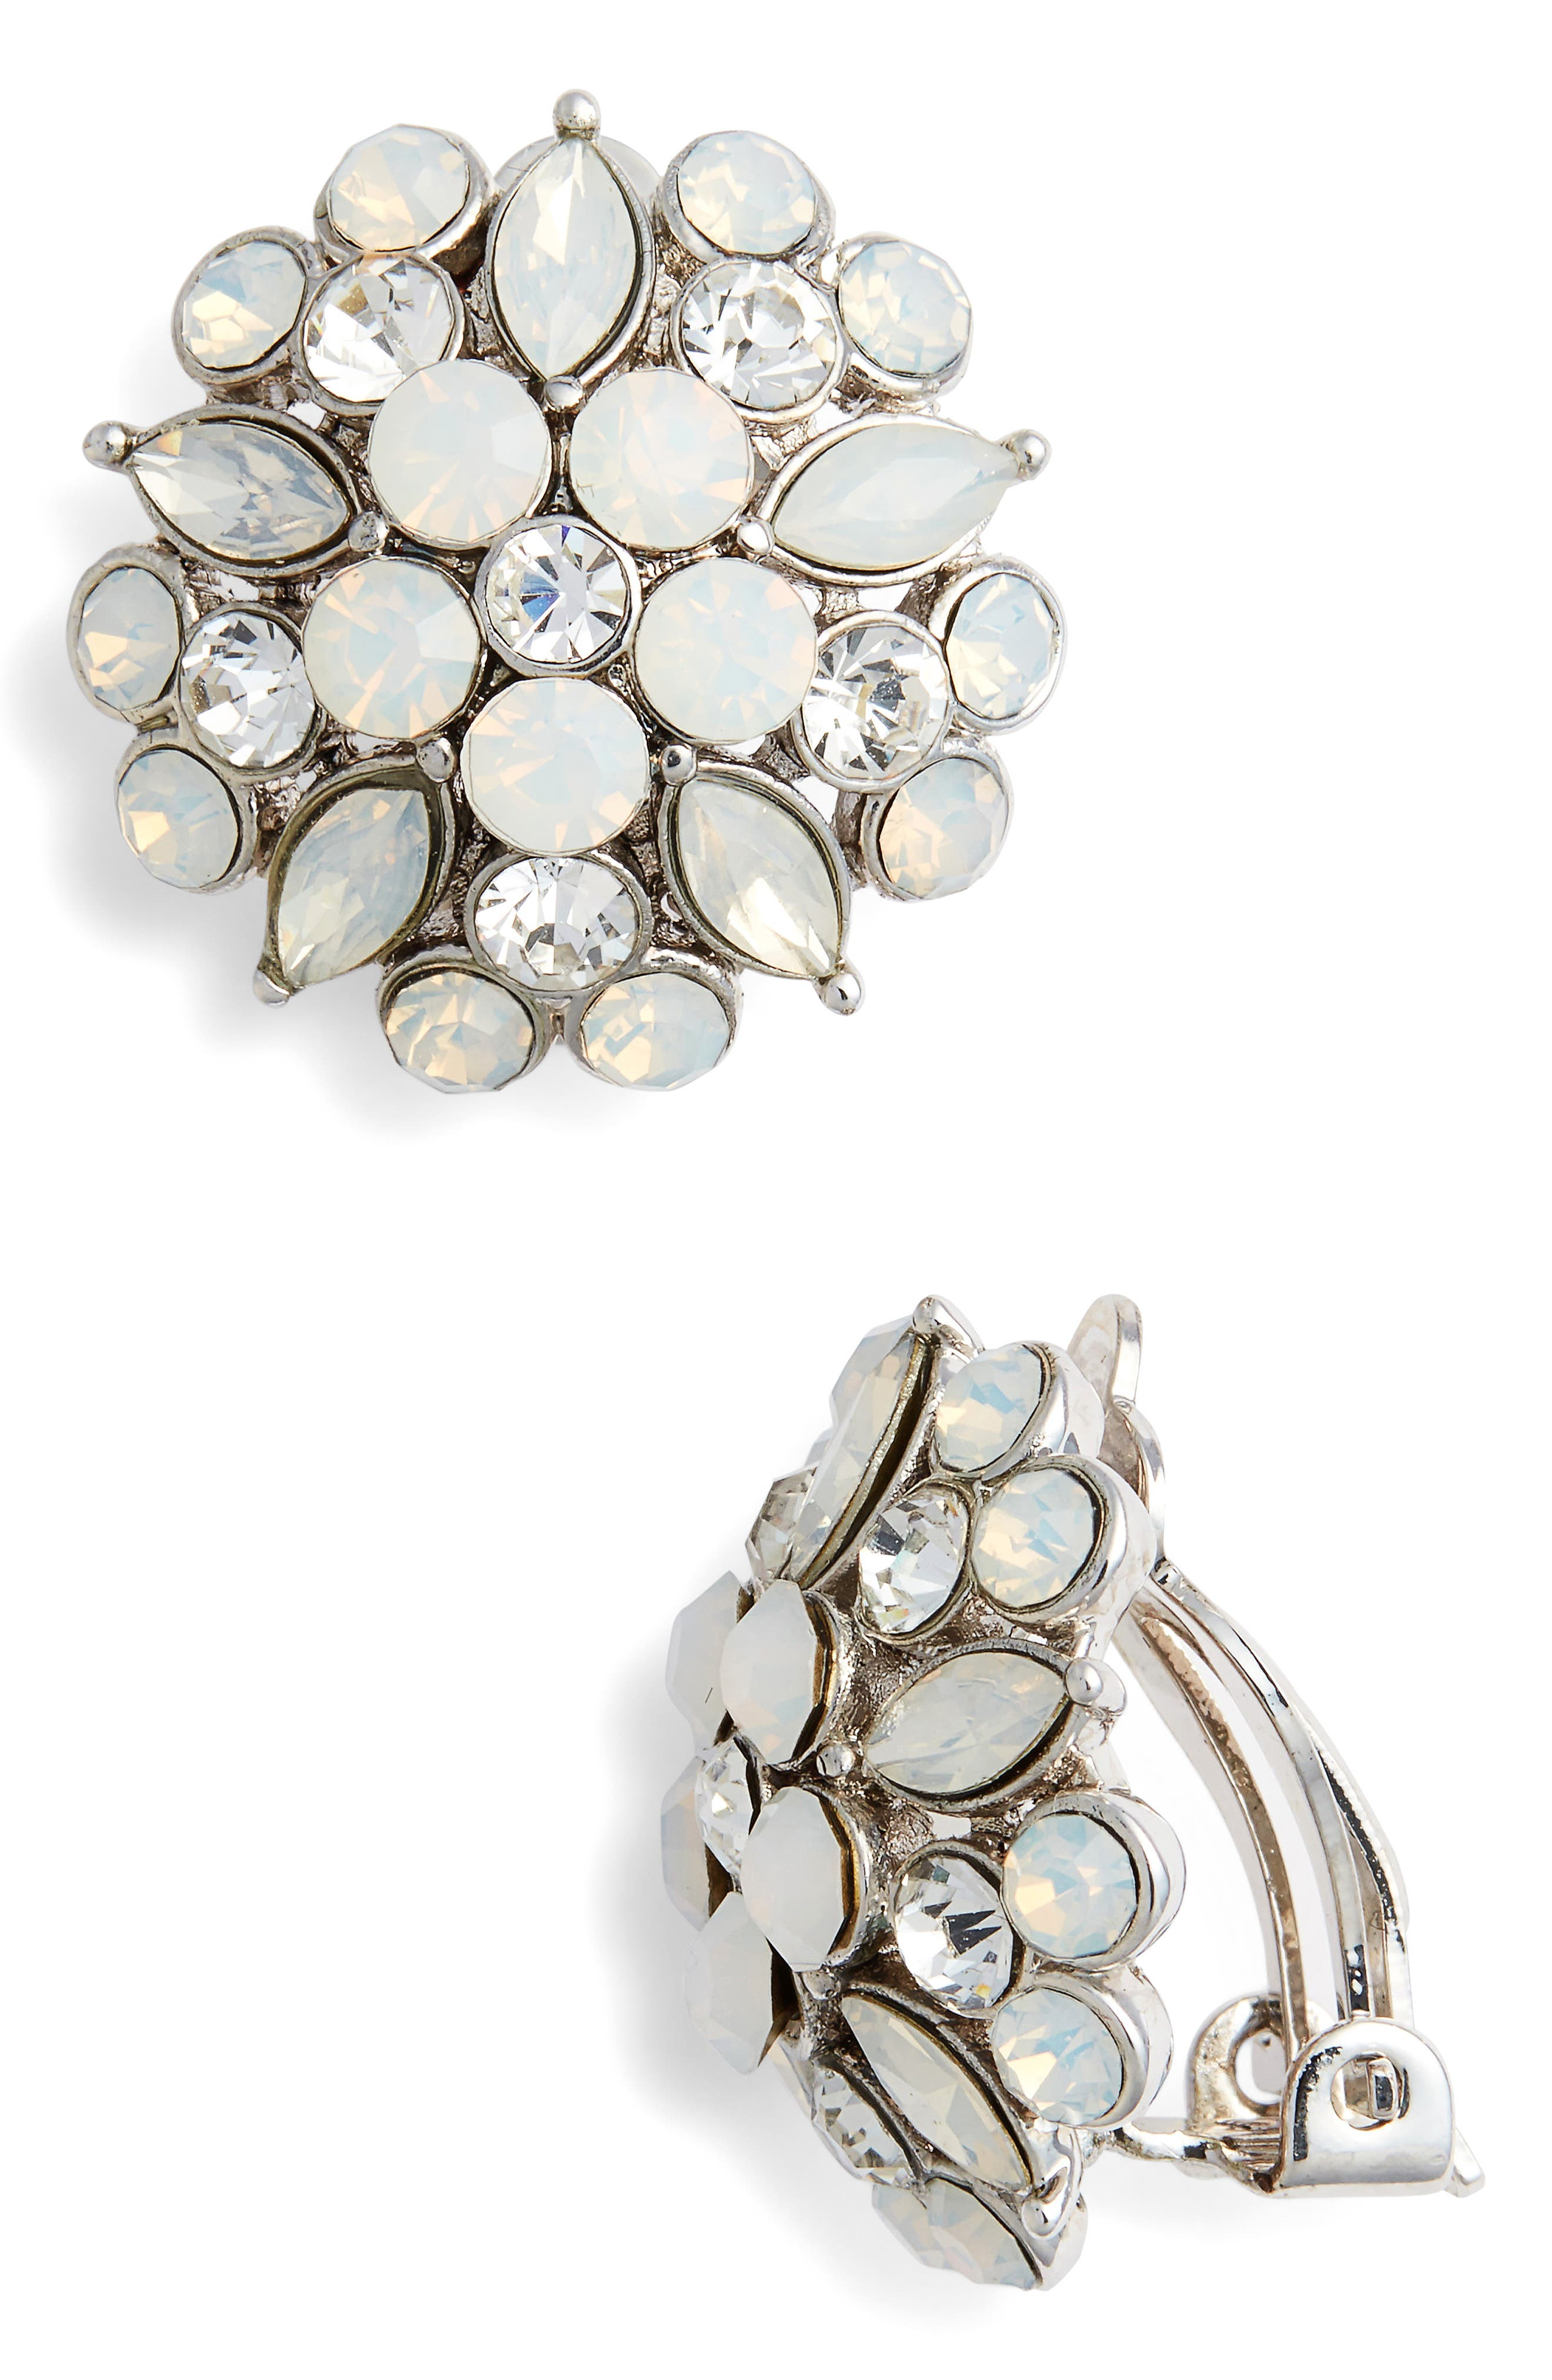 Floral Stud Earrings,                             Main thumbnail 1, color,                             Silver/ Opal/ White Crystal